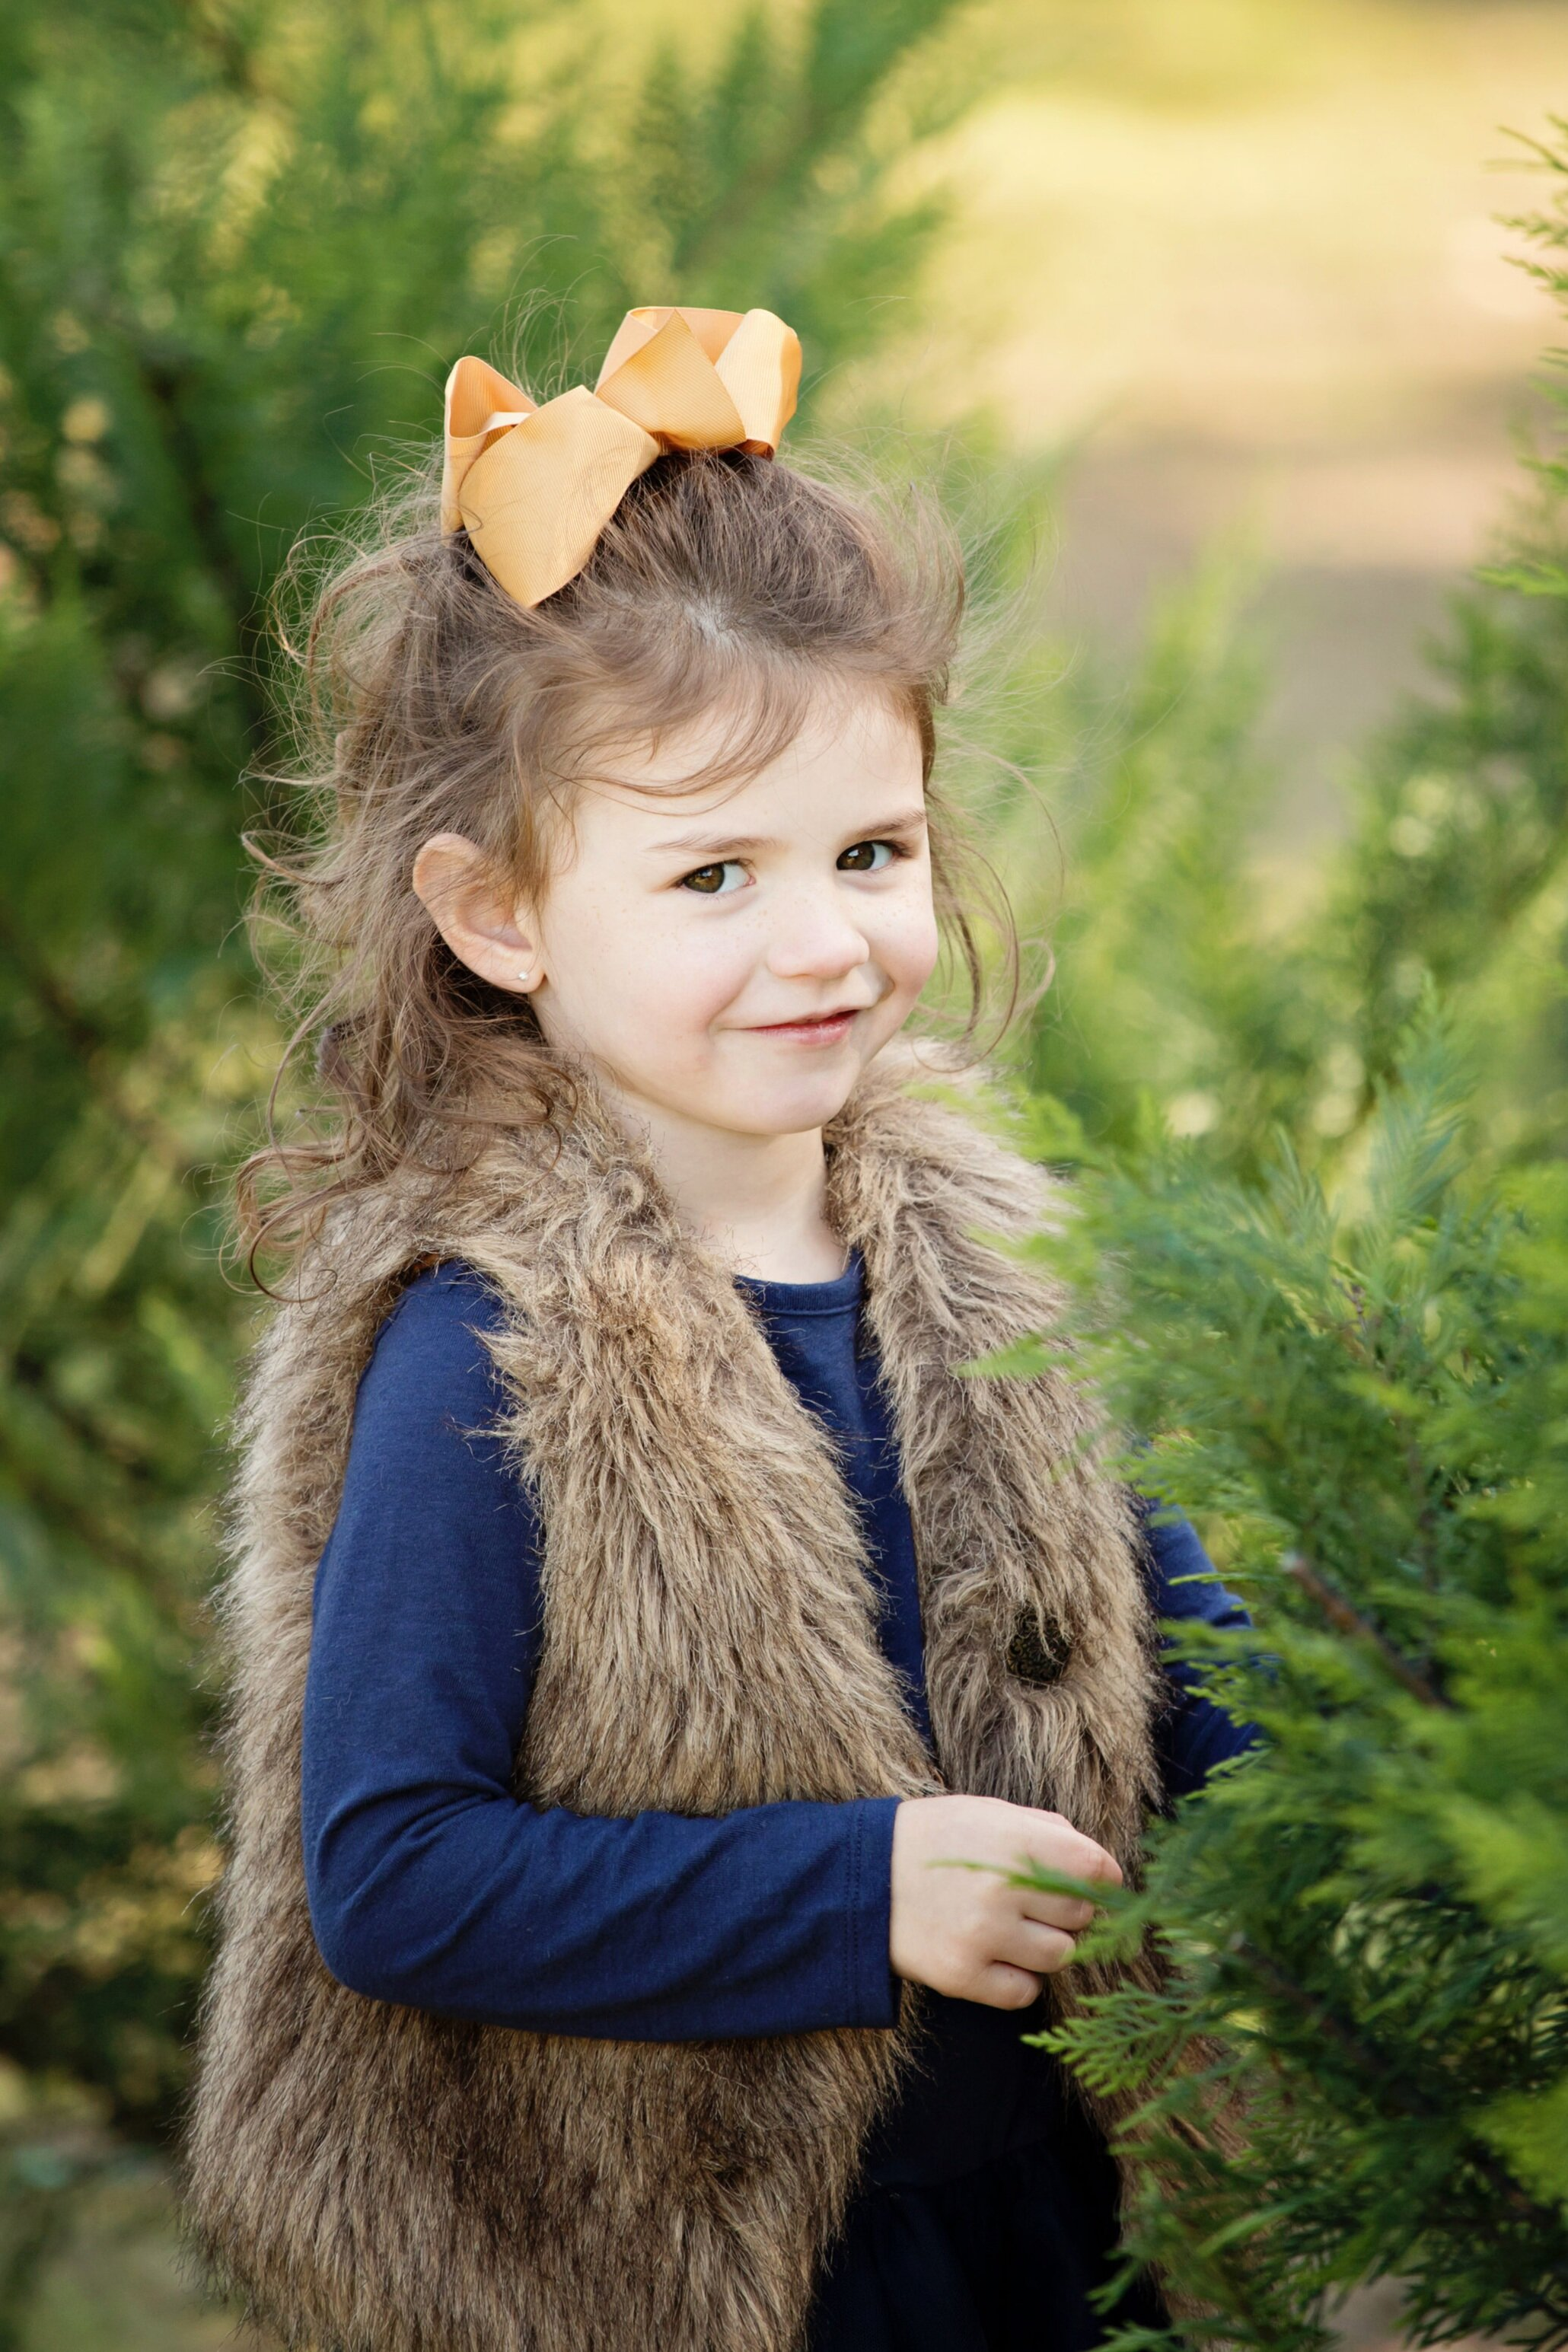 Christmas TRee FARM Mini sessions - Sessions at Thomley's Christmas Tree Farm. October 4th & 5th and October 18th & 19thMini sessions are 20 minutes long with 10 digital images. $199.00 (+tax)Sessions are on a first-come, first-pay basis and those who book first get first choice on time. Click BOOK NOW! To see what times are available!Entire session fee is due up front to secure your spot